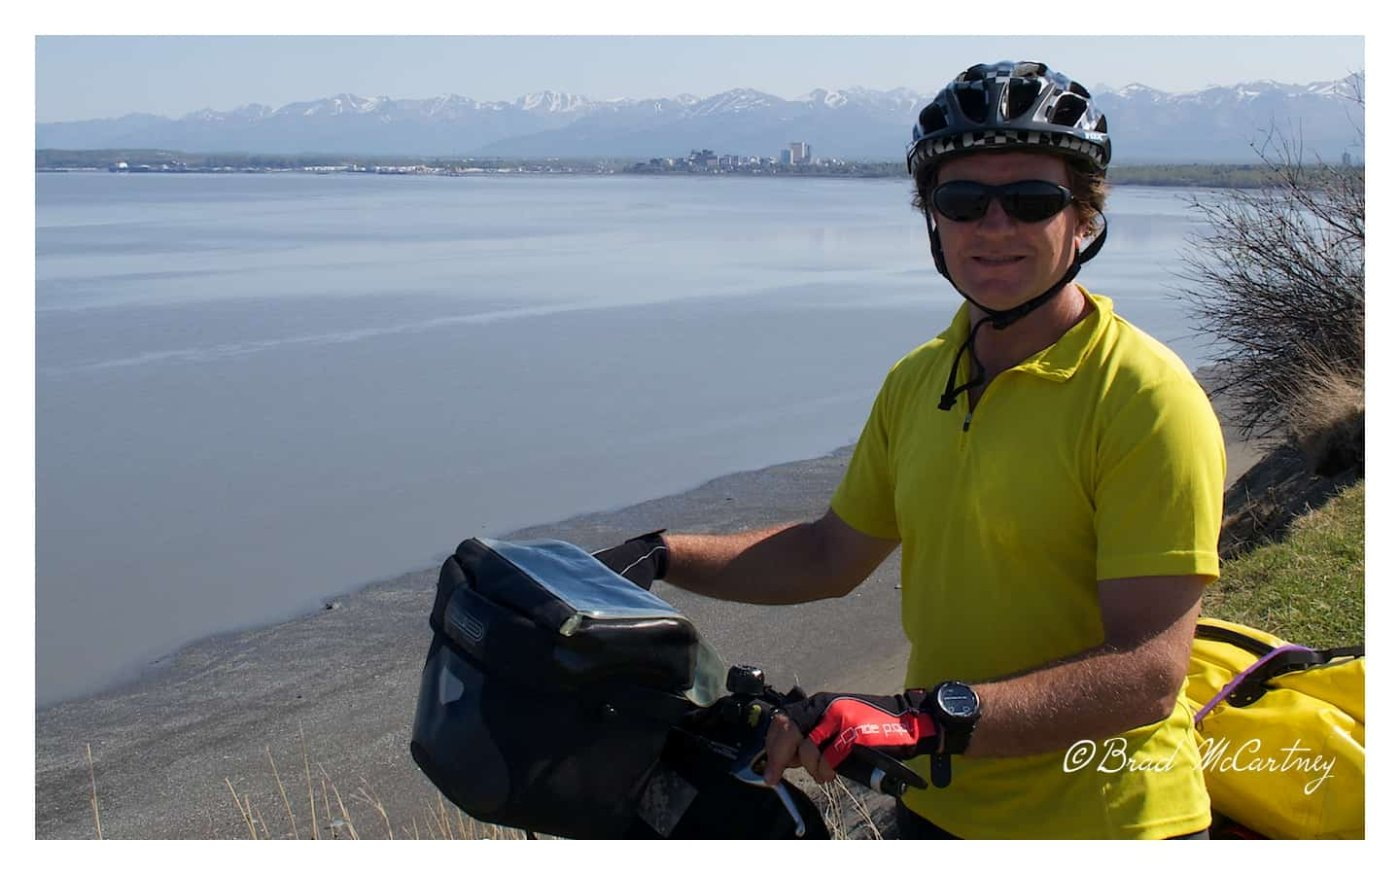 Start cycling Alaska, with downtown Anchorage in the background